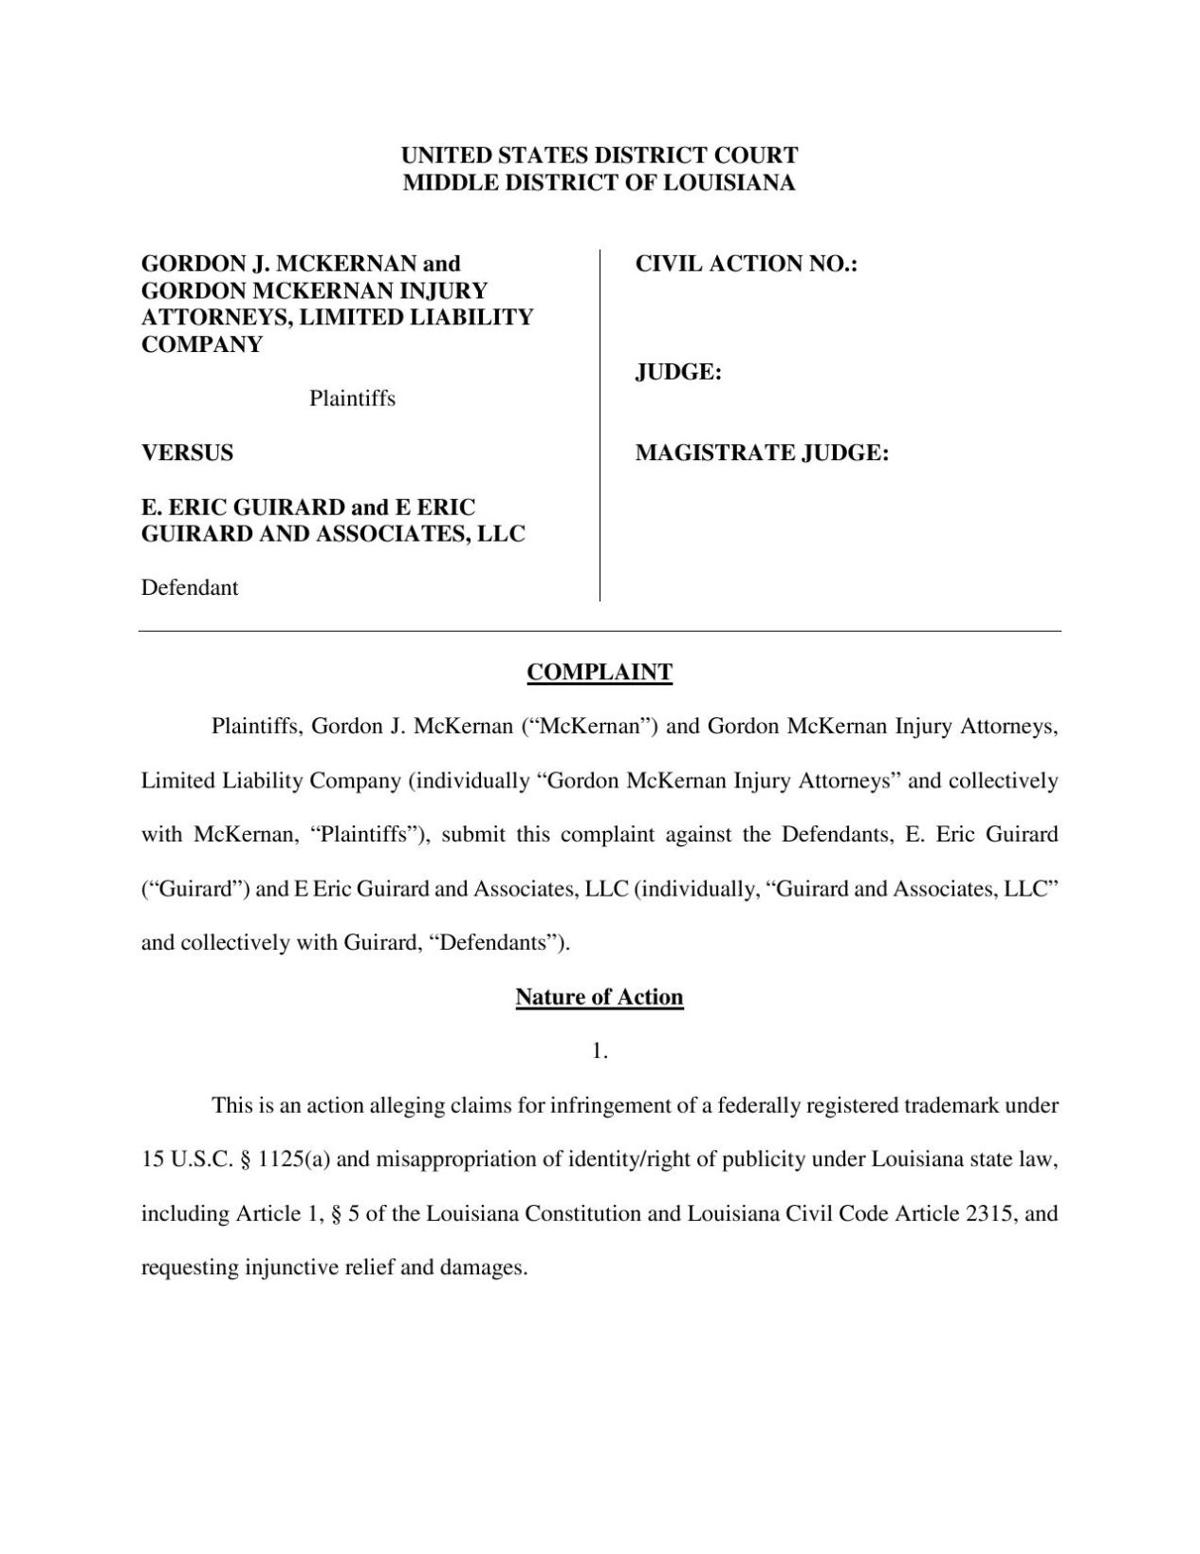 Read full lawsuit filed by Gordon McKernan